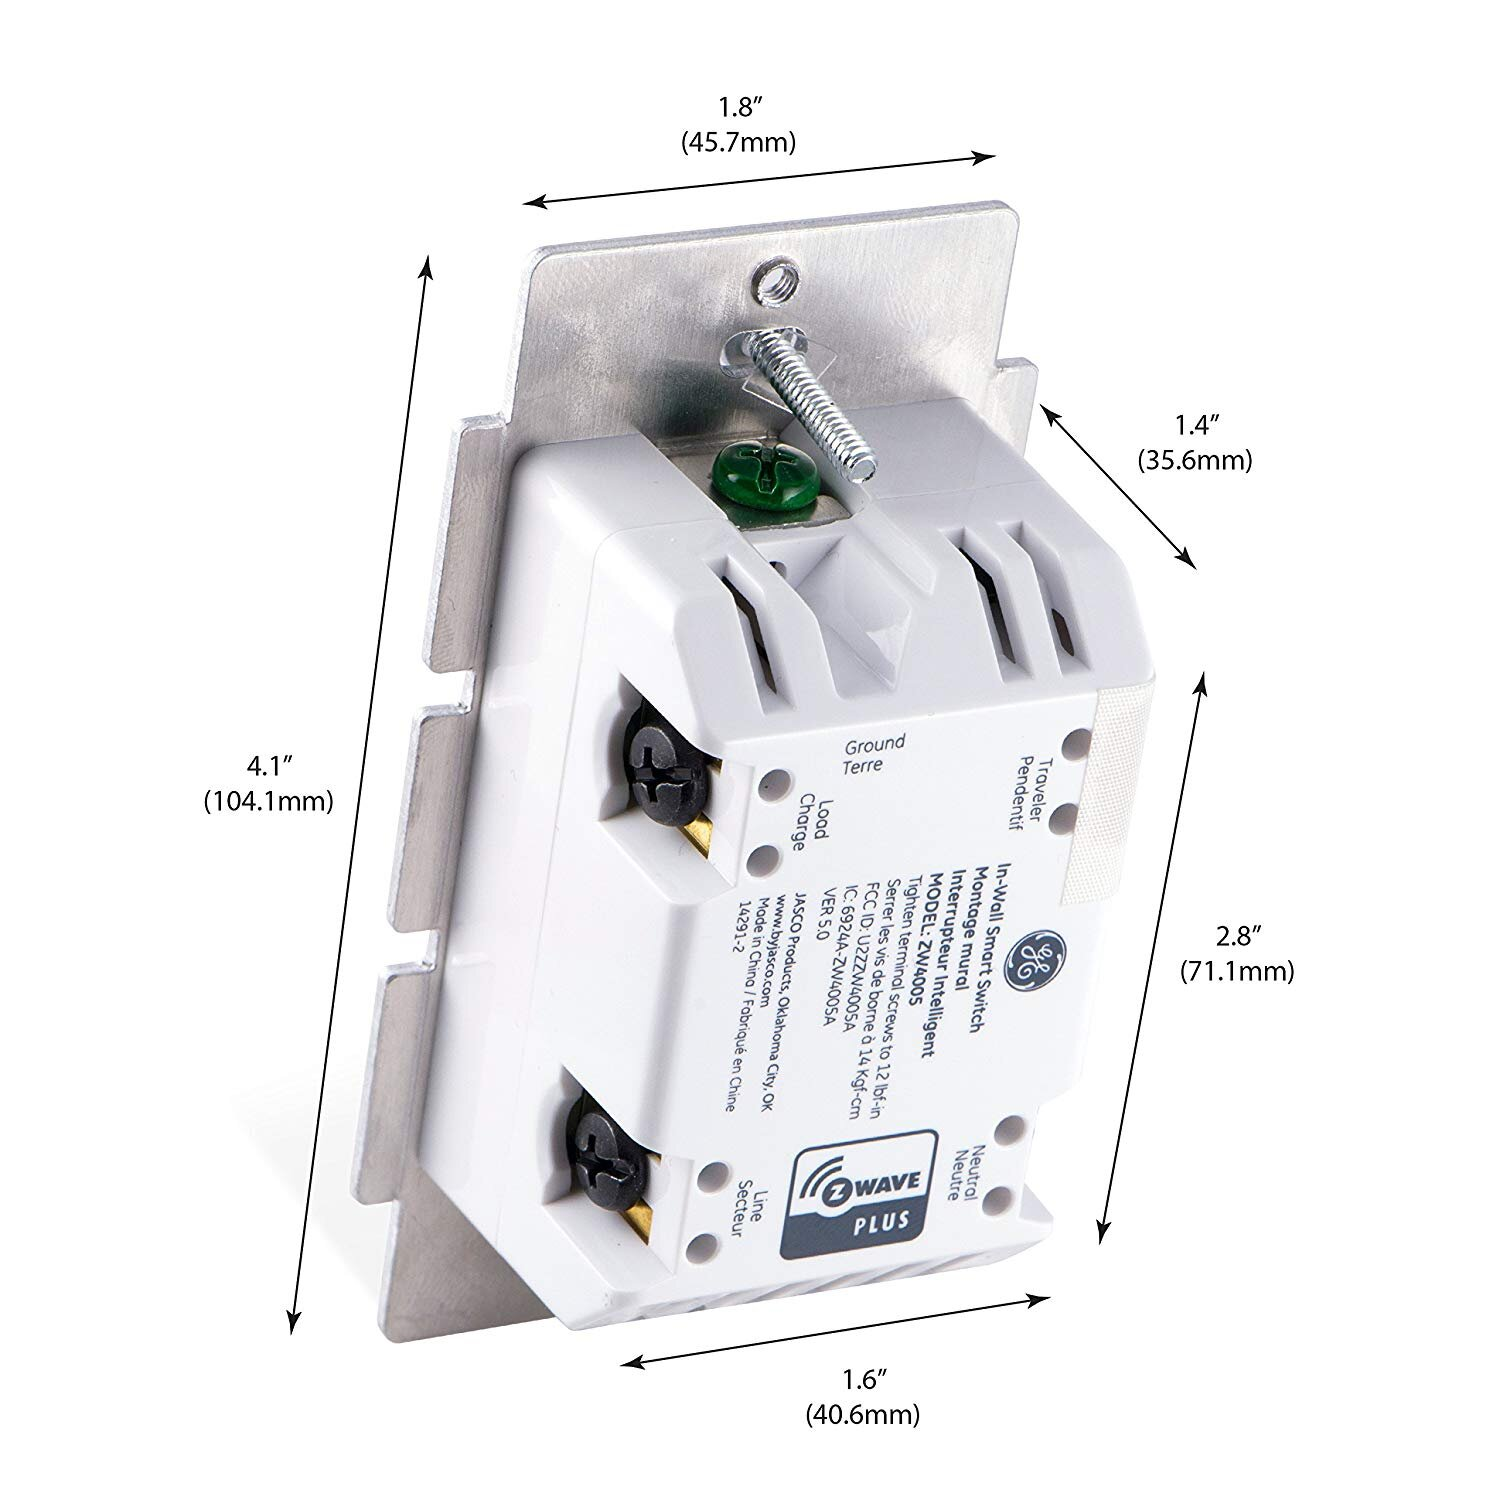 GE Smart Switch Wiring Connectors on the Back